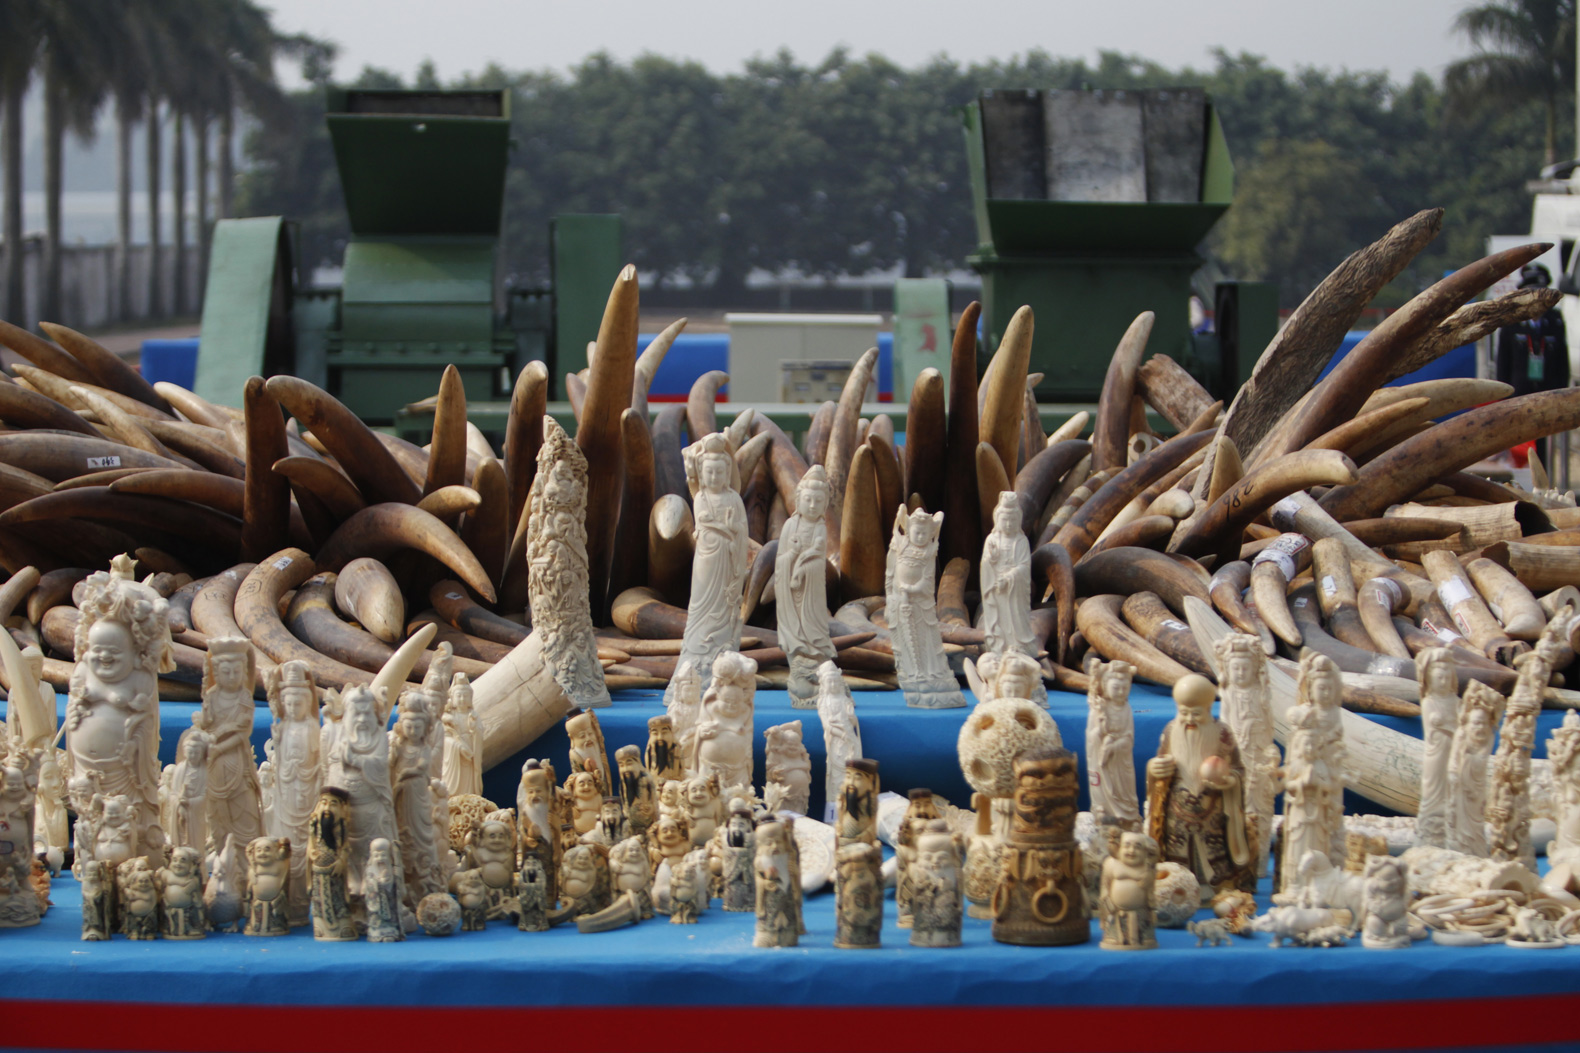 Ivory Queen sentenced to 15 years for illegal ivory smuggling